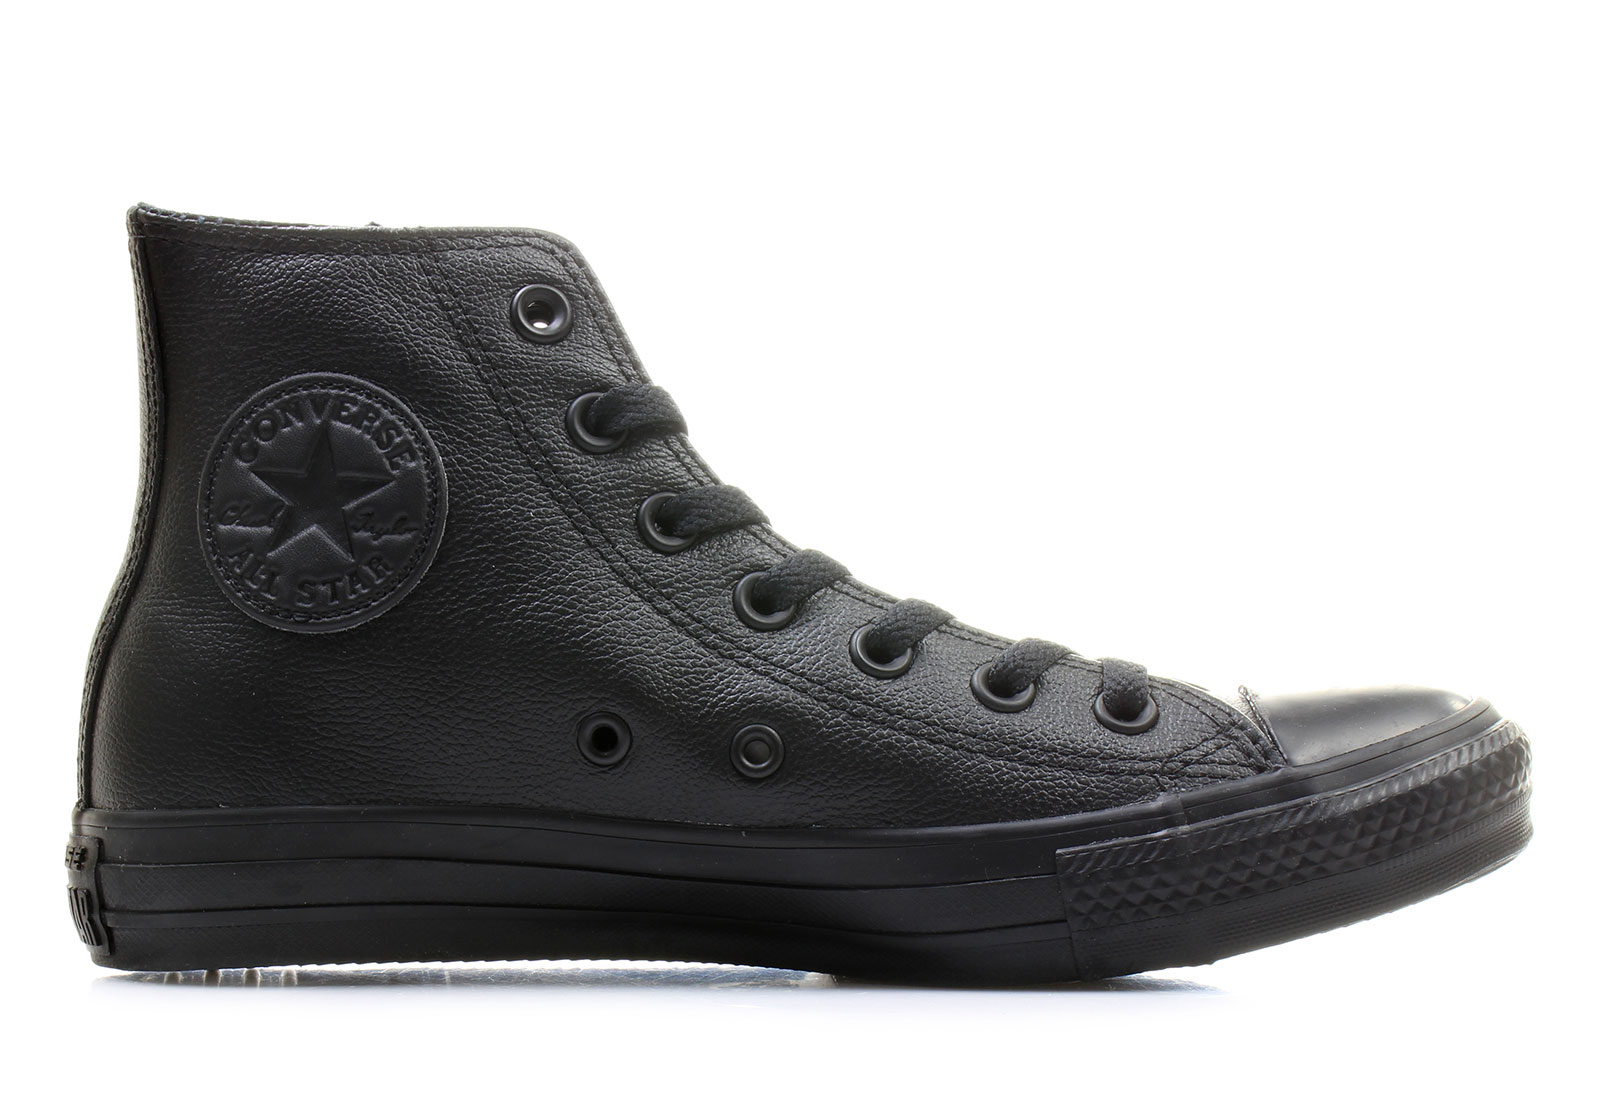 9df53e81c85a Converse Tornacipő - Chuck Taylor All Star Leather Hi - 135251C ...